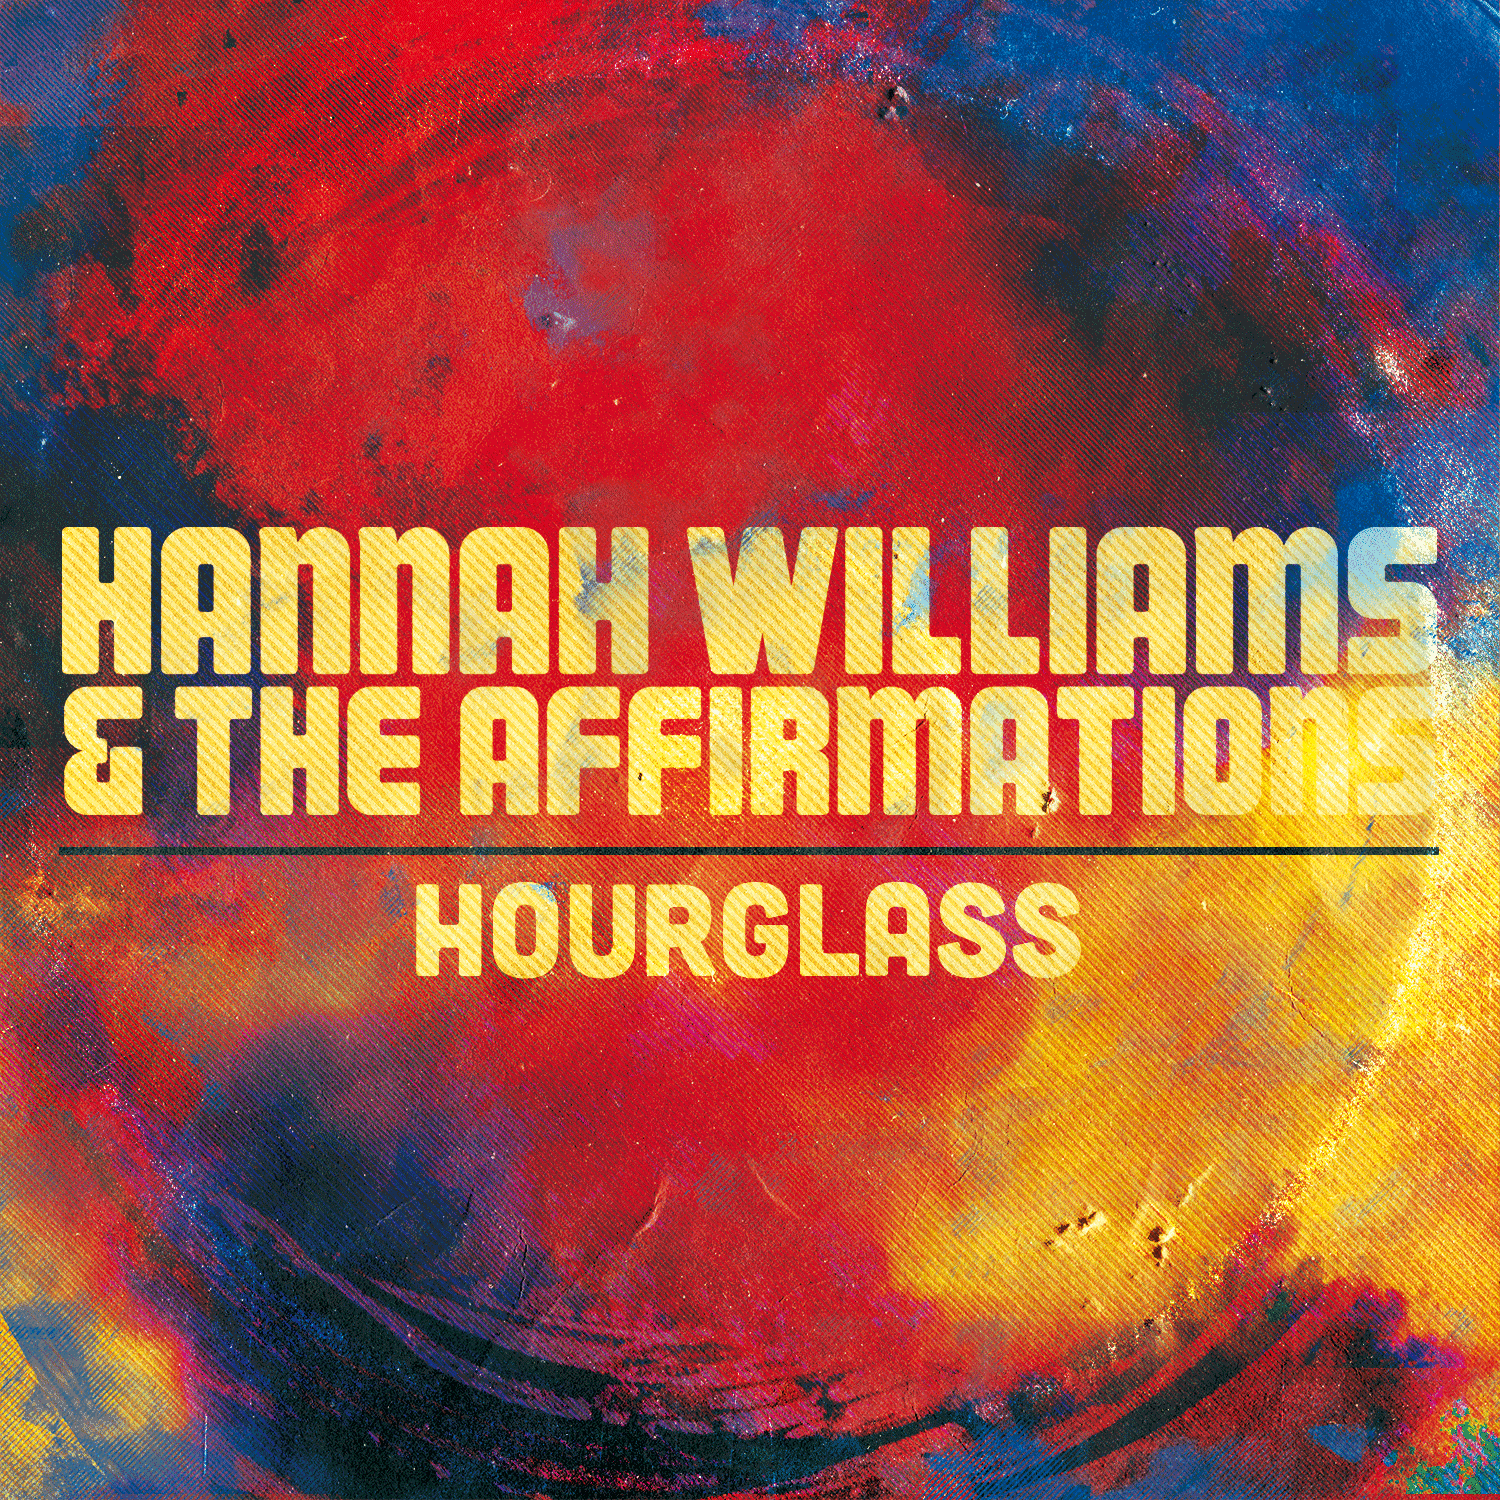 Découvrez Hourglass, 3e extrait de l'album 50 Foot Woman de Hannah Williams & The Affirmations.